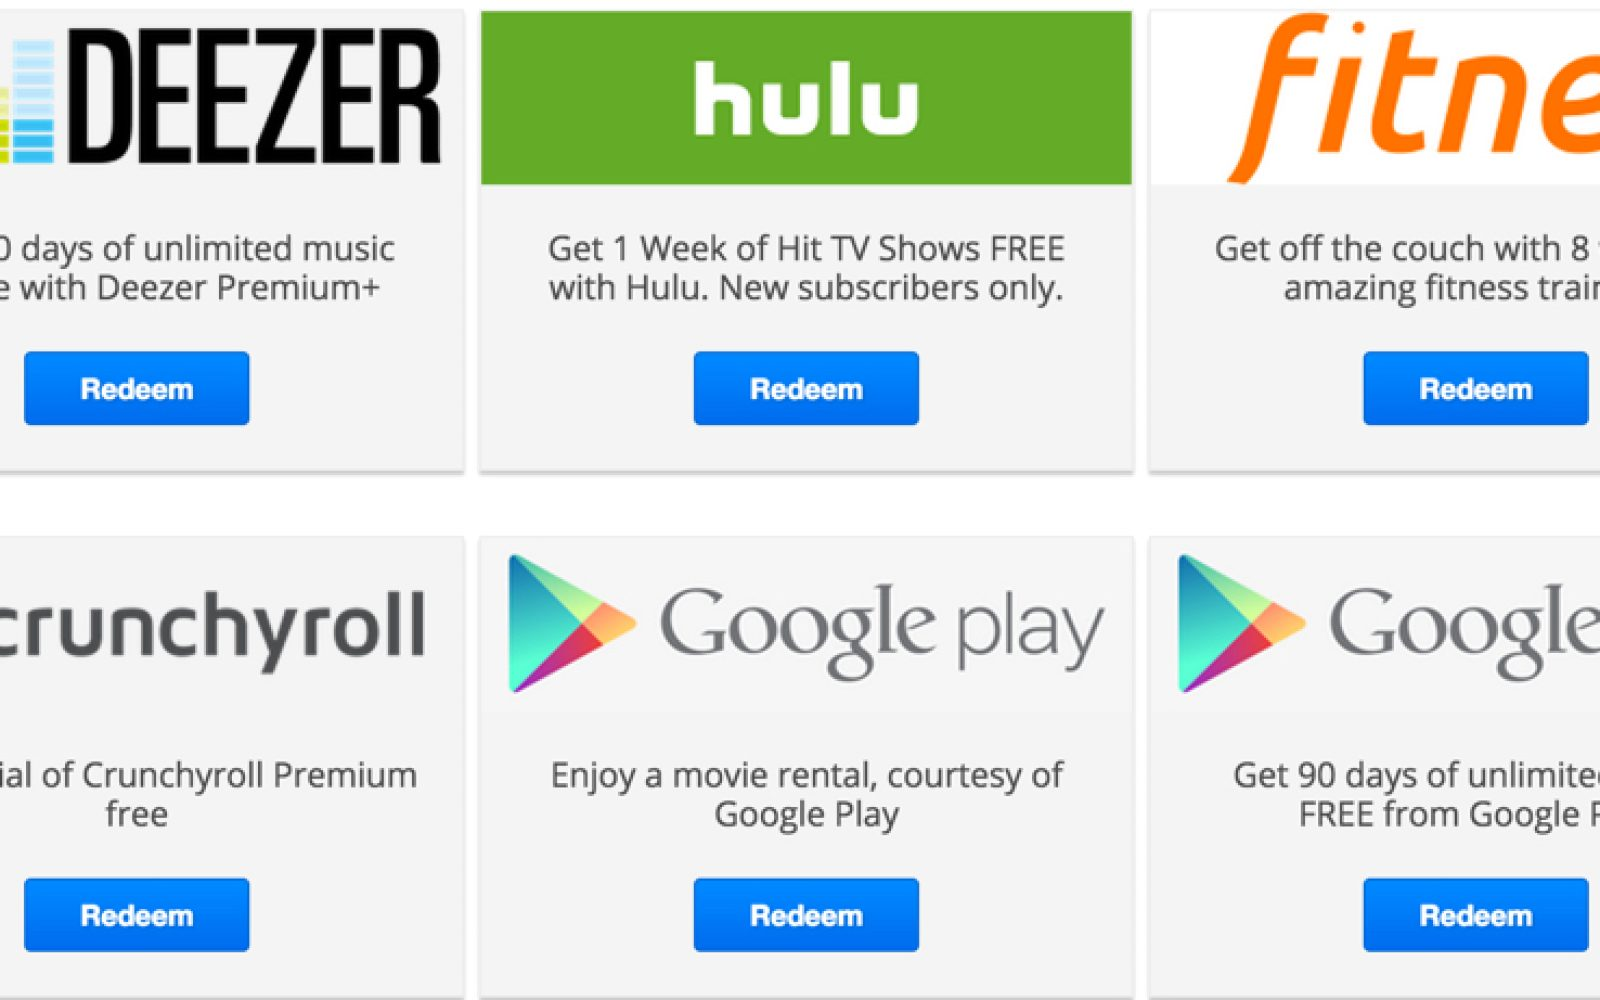 chromecast - Page 2 of 5 - 9to5Toys